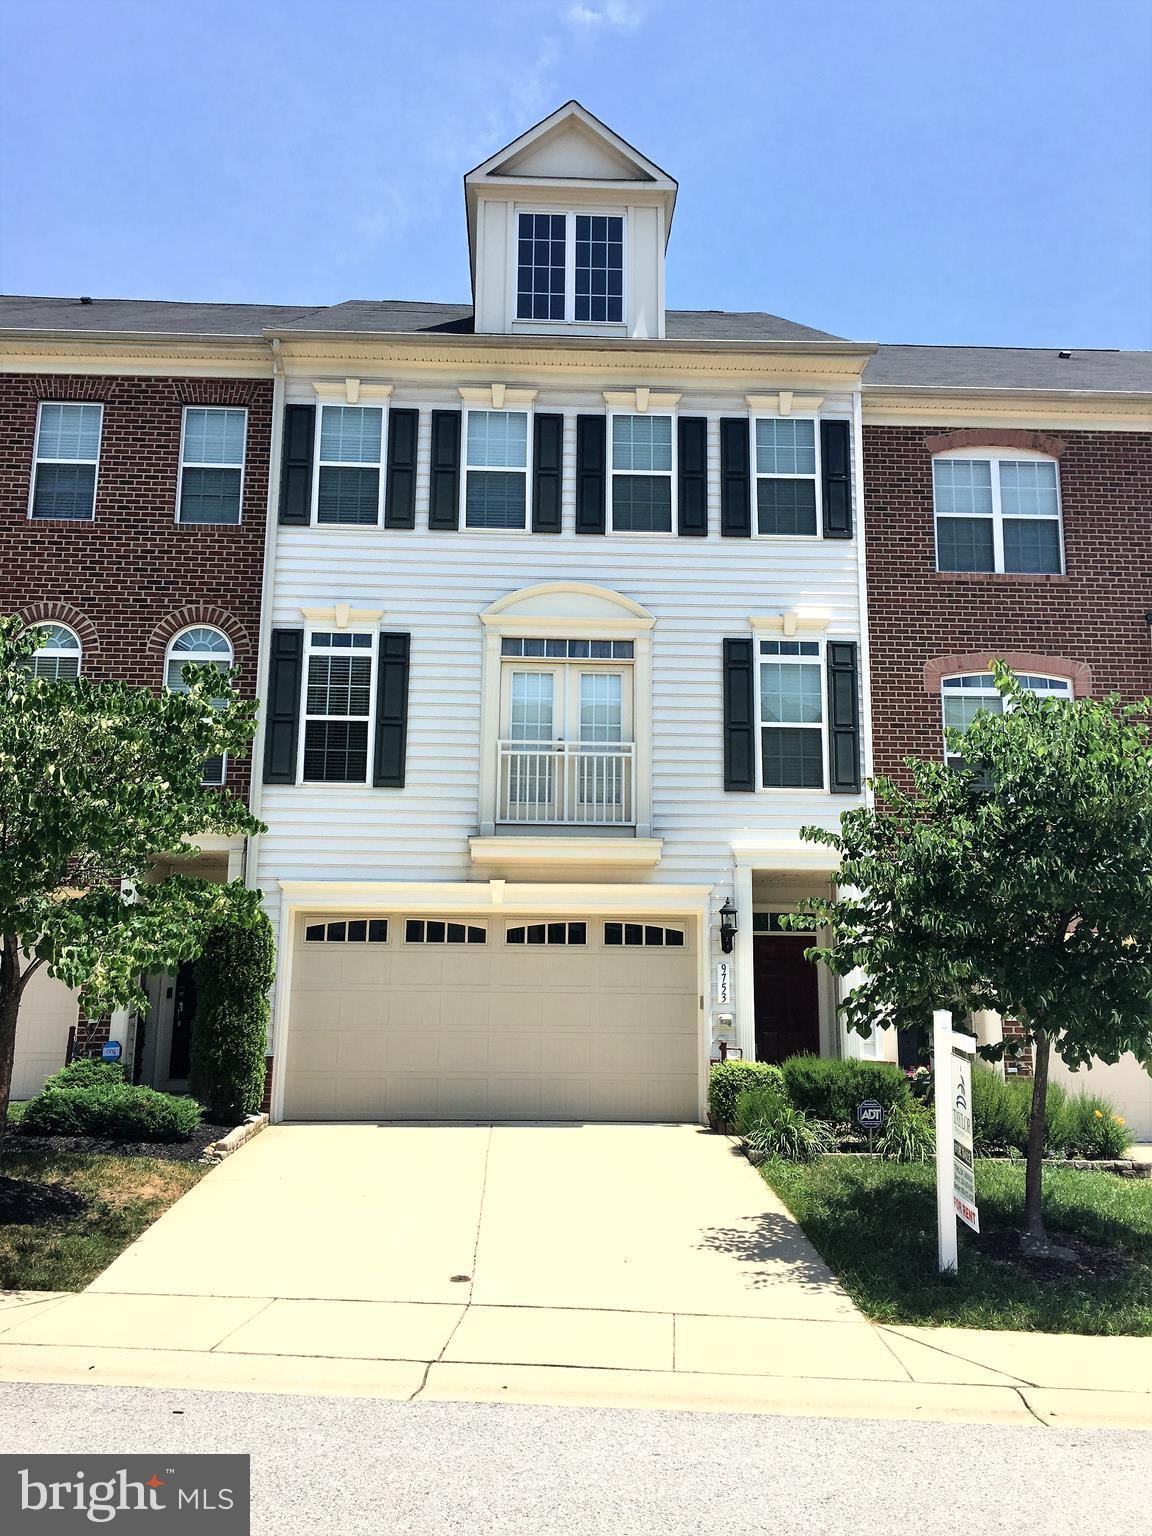 Luxurious and relatively new interior townhome in a very good neighborhood. Upgraded kitchen with gr